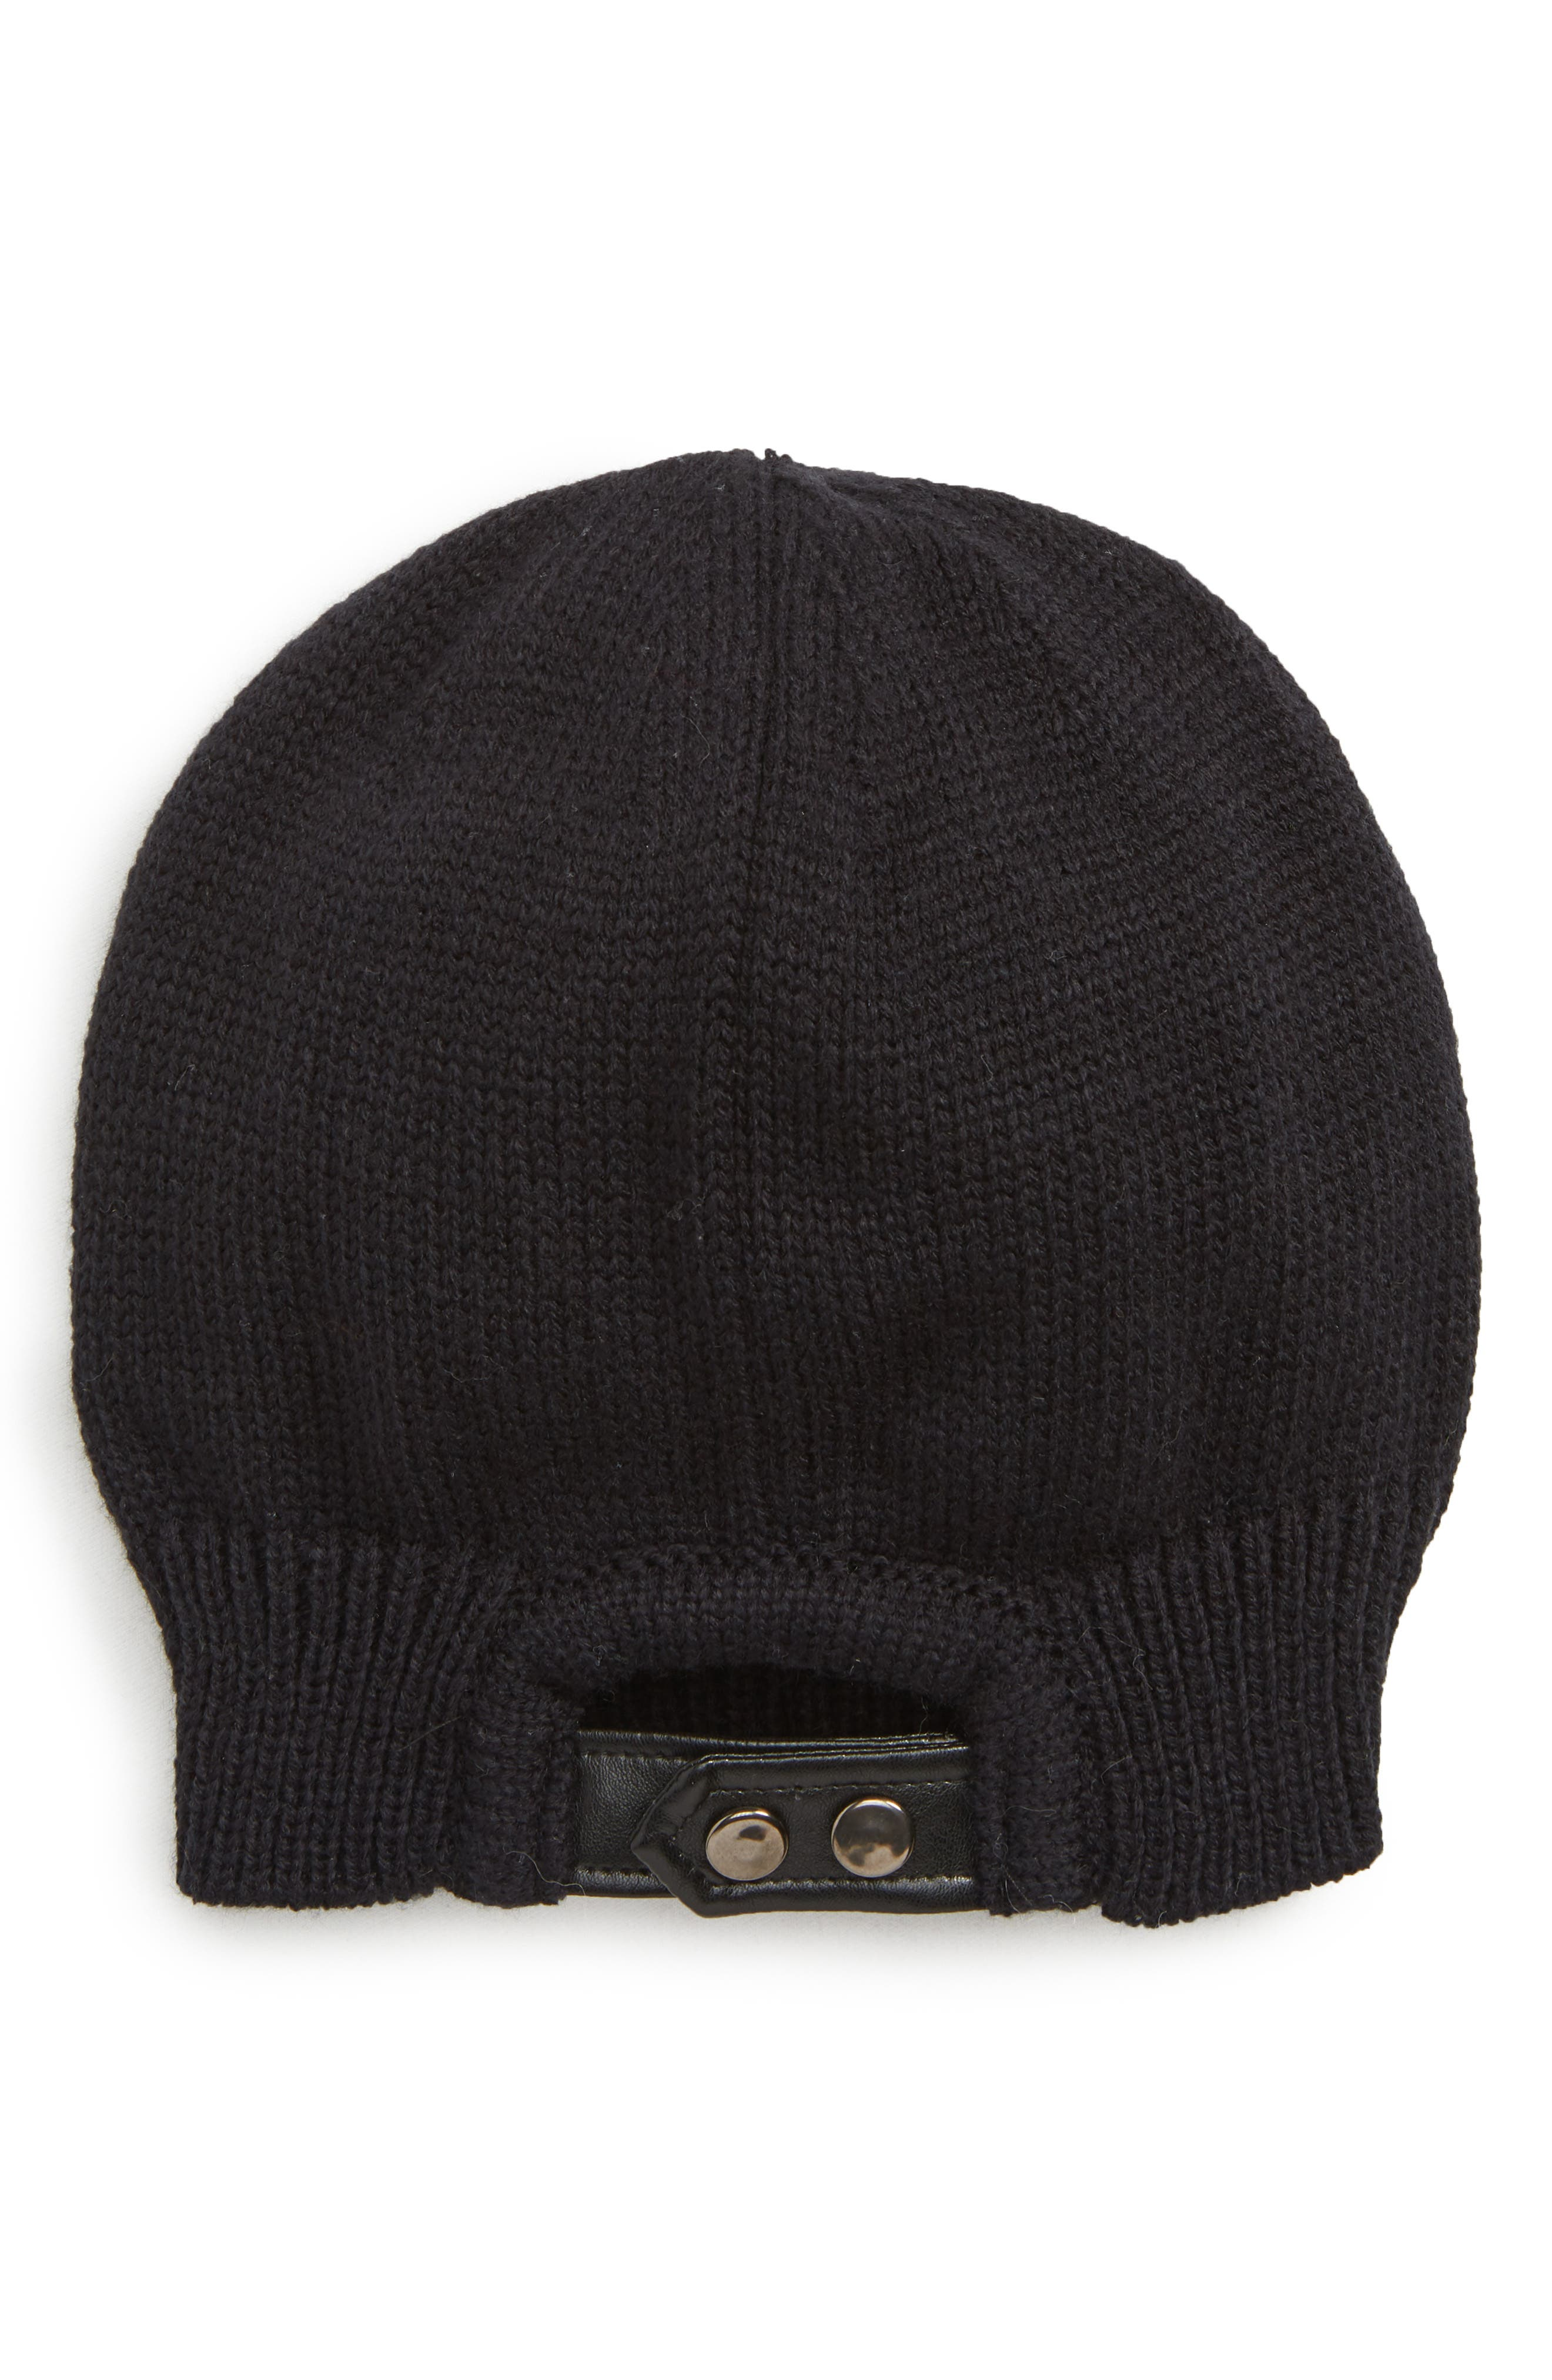 Snap Band Beanie,                             Alternate thumbnail 2, color,                             BLACK